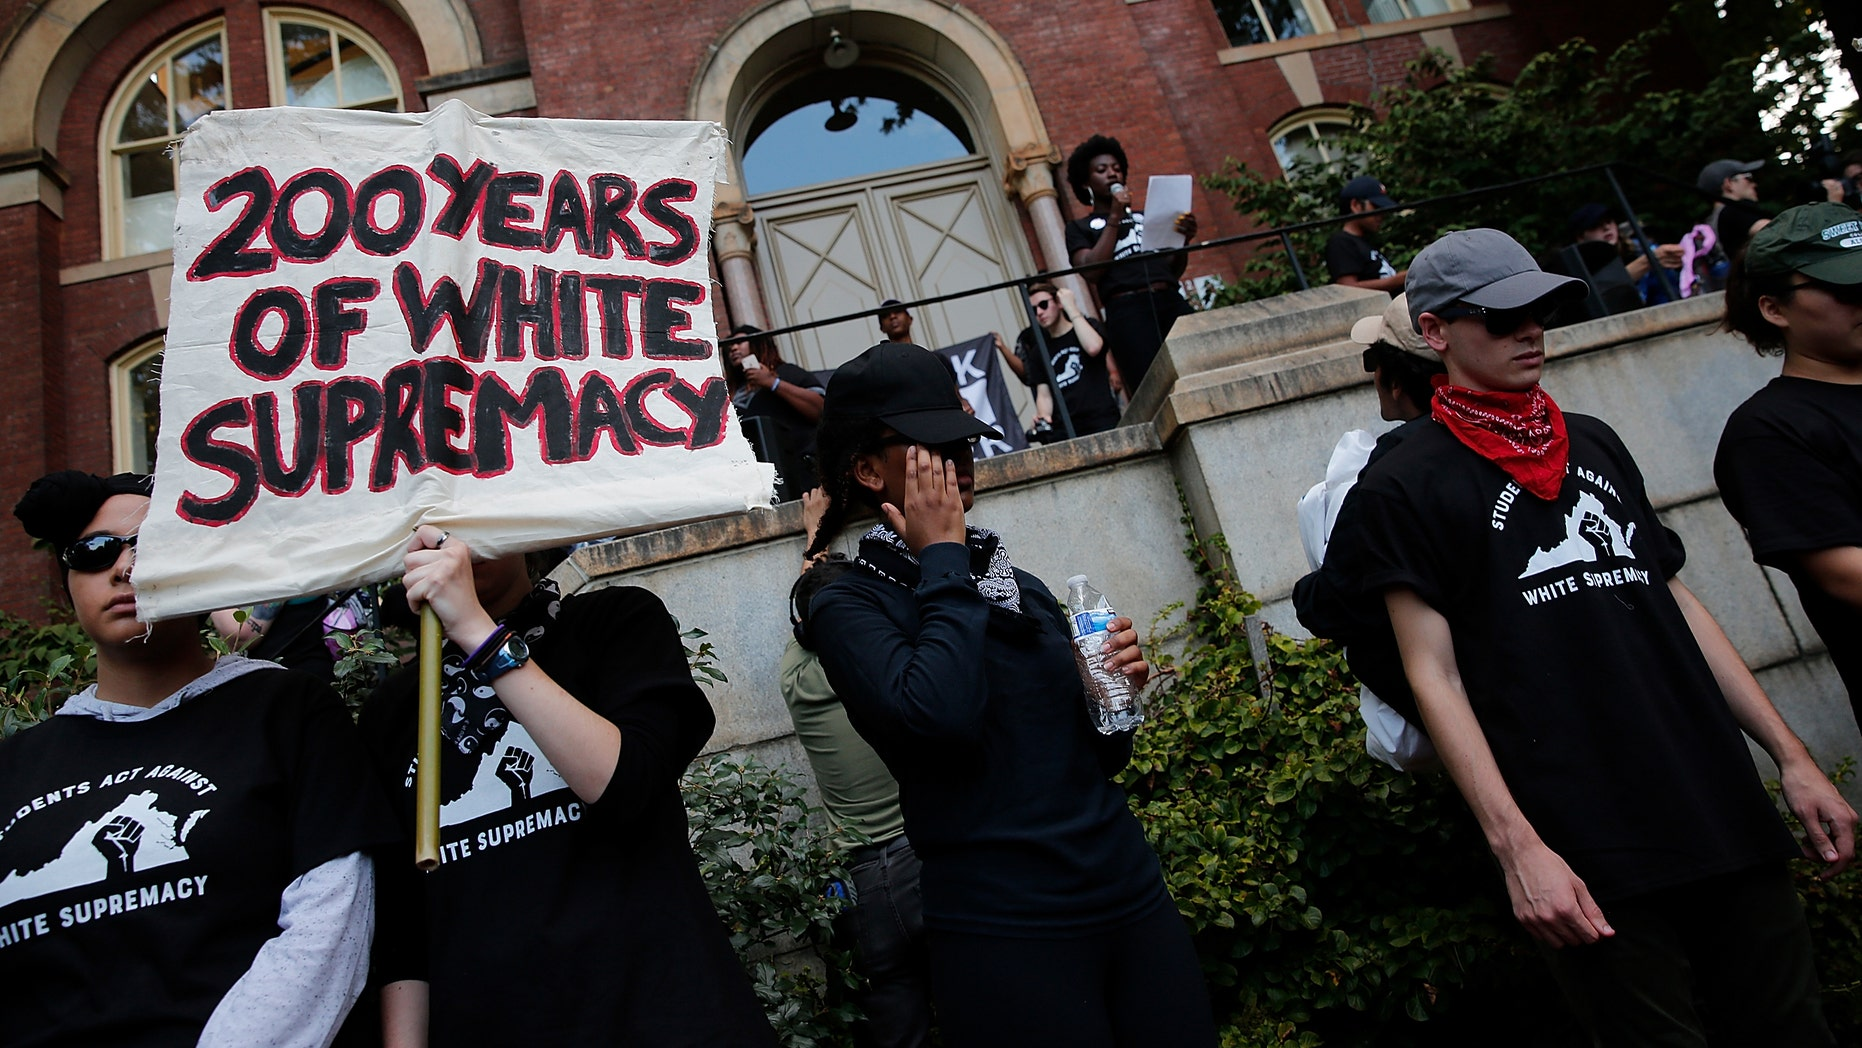 """File photo - Protesting with the Students Act Against White Supremacy group speaks at the University of Virginia's campus during an event marking a one-year anniversary of a deadly clash of white supremacists and counter-protocols on August 1<div class=""""e3lan e3lan-in-post1""""><script async src=""""//pagead2.googlesyndication.com/pagead/js/adsbygoogle.js""""></script> <!-- Text_Image --> <ins class=""""adsbygoogle""""      style=""""display:block""""      data-ad-client=""""ca-pub-6192903739091894""""      data-ad-slot=""""3136787391""""      data-ad-format=""""auto""""      data-full-width-responsive=""""true""""></ins> <script> (adsbygoogle = window.adsbygoogle 